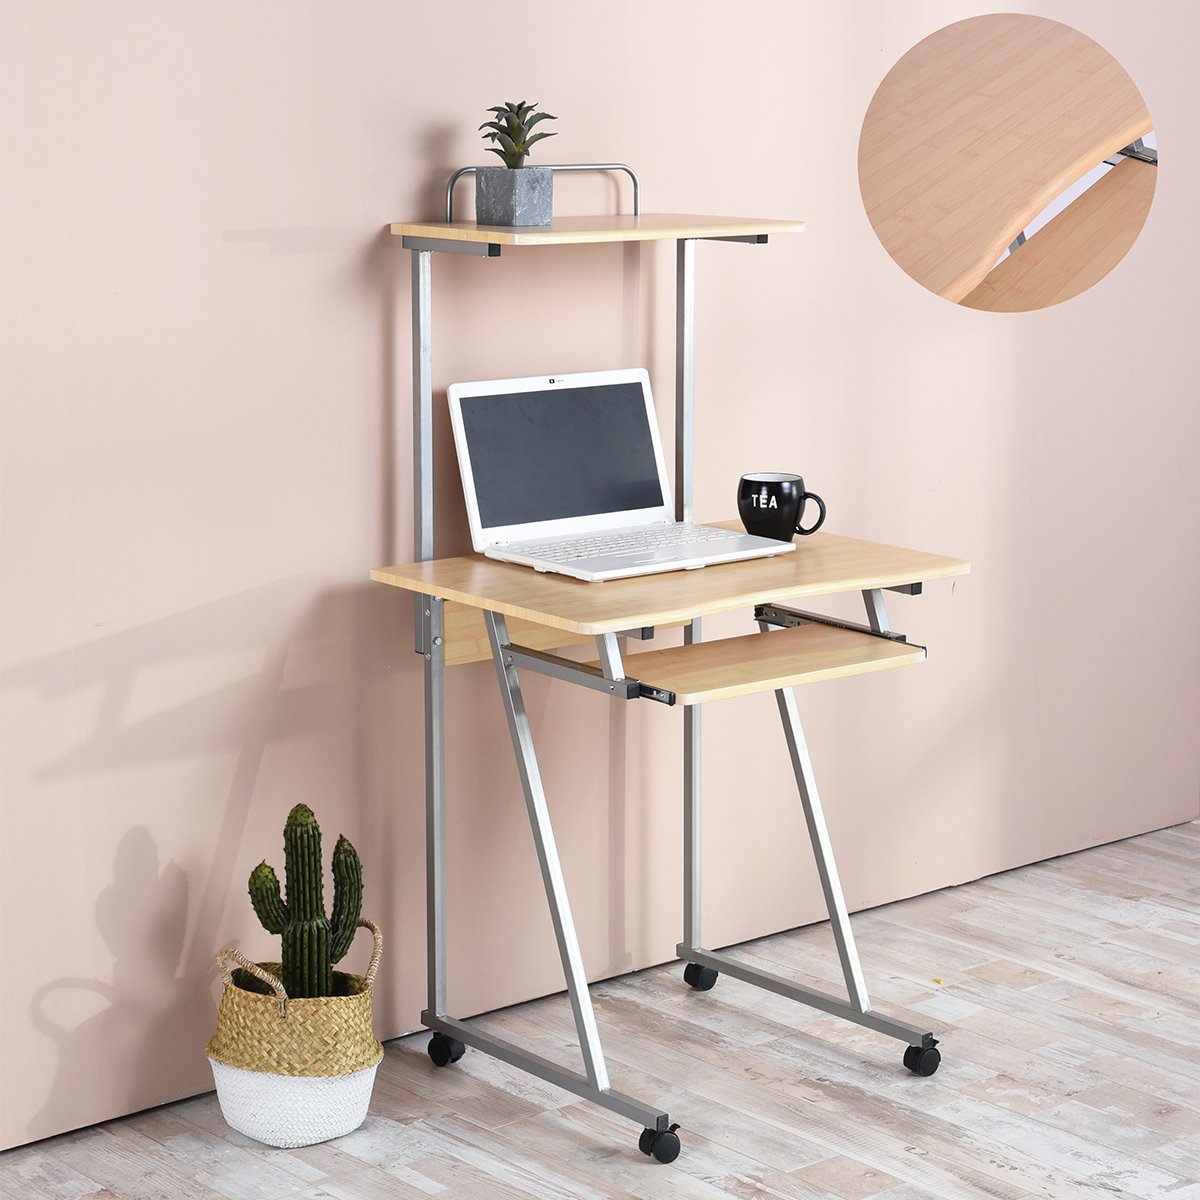 Aingoo Small Computer Desk Rolling Work Workstation With Printer Shelf and Keyboard, Beige